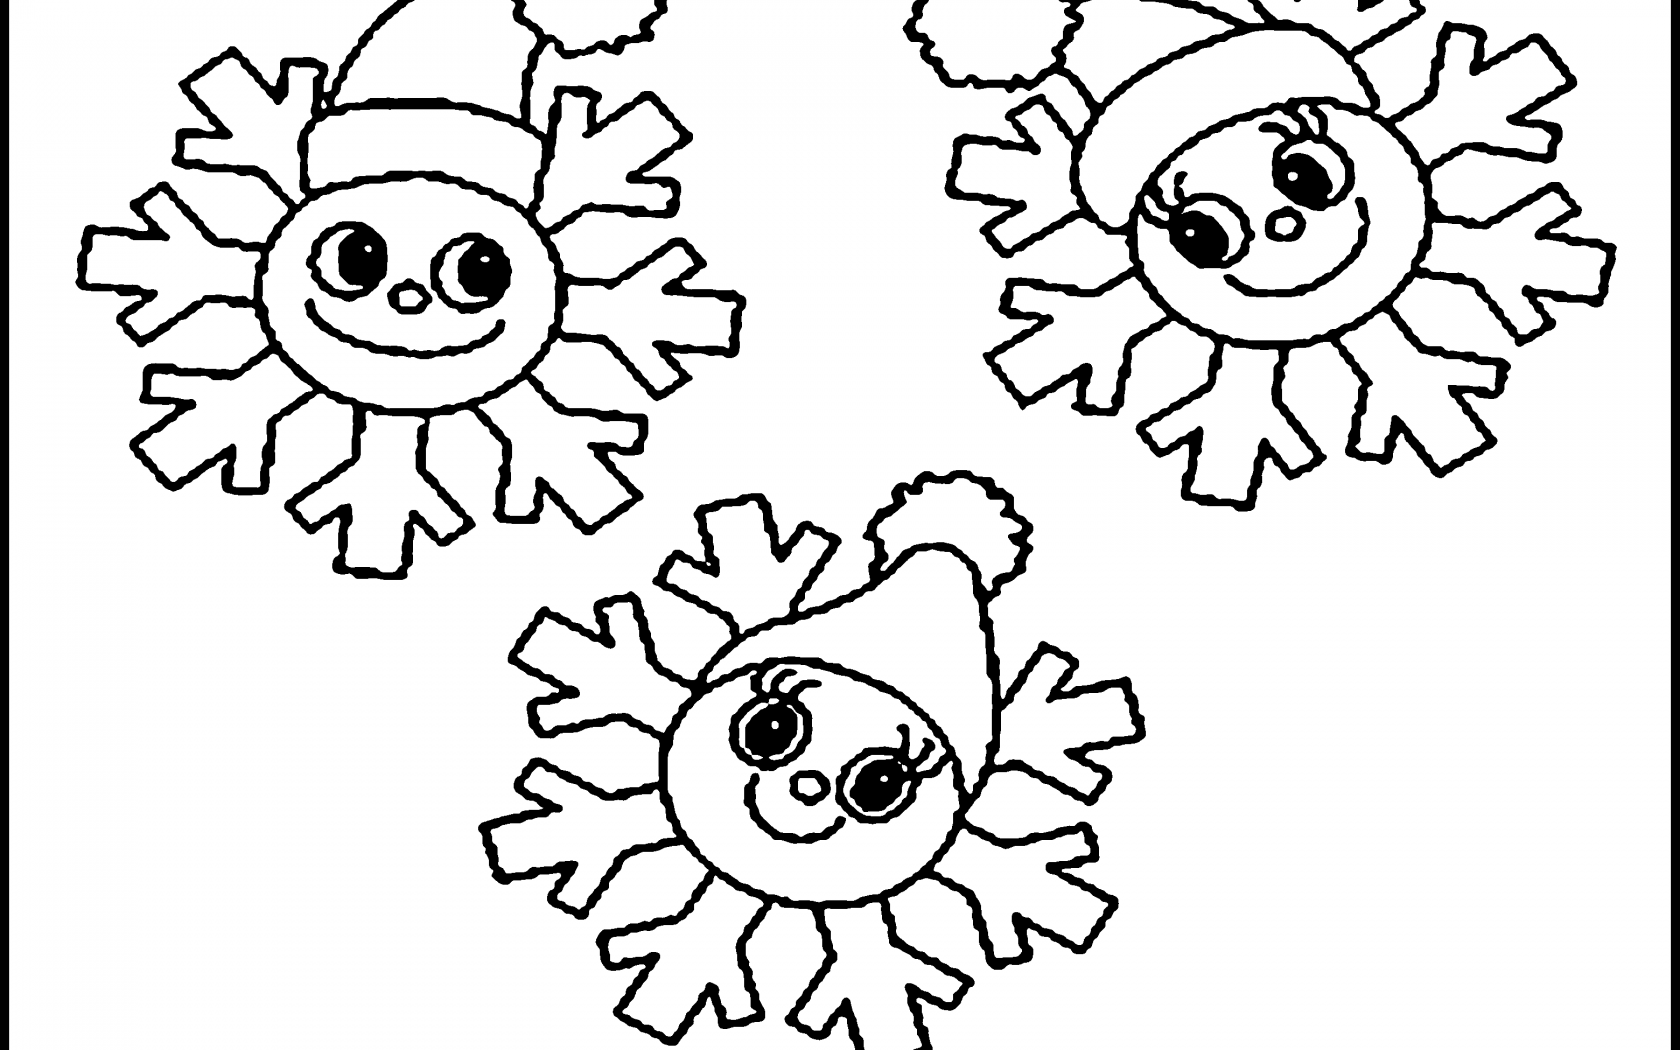 1680x1050 Printable Snowflake Coloring Pages For Kids Unique Free